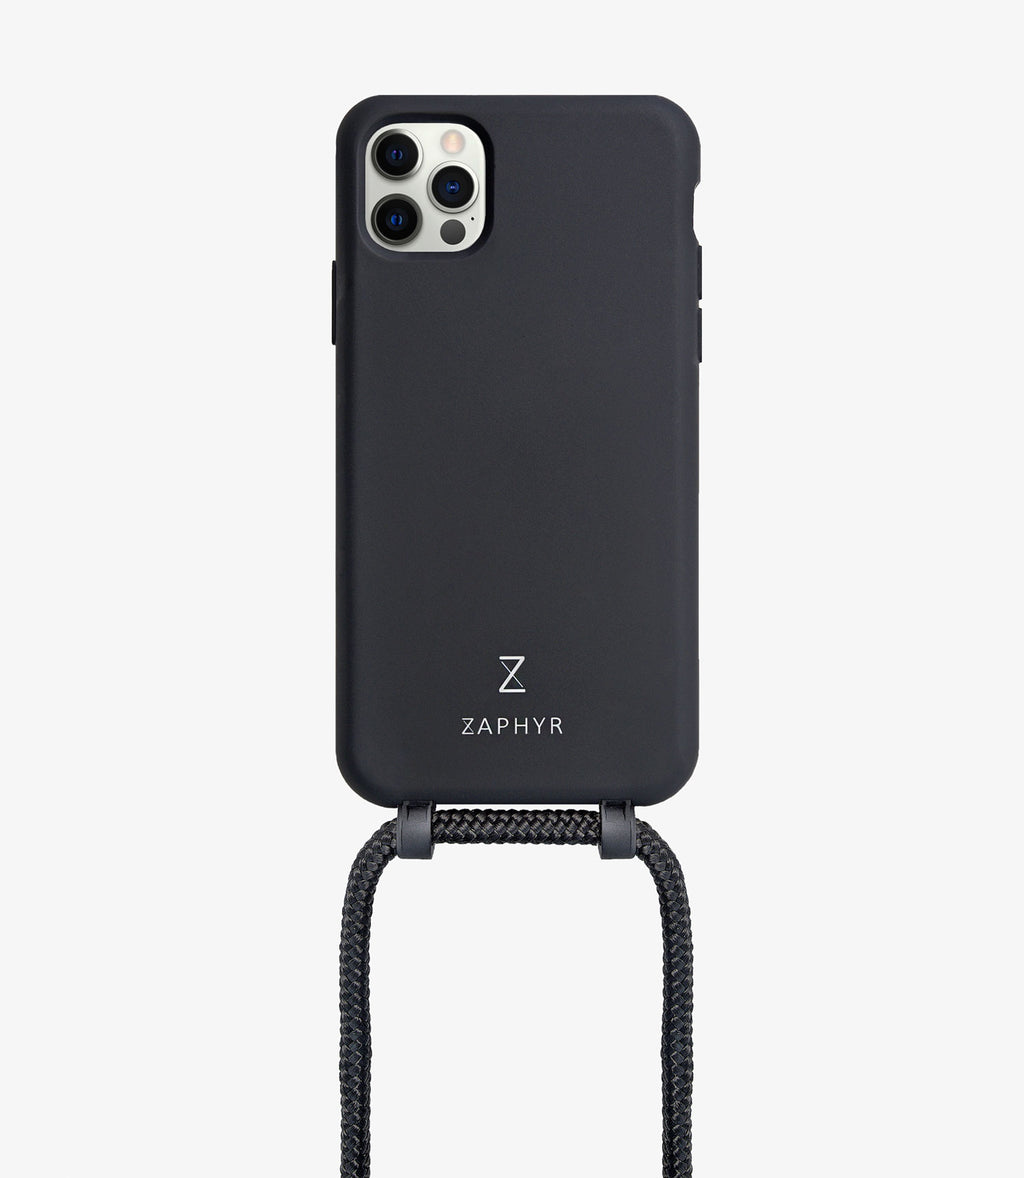 Zaphyr crossbody phone case for Apple iPhone12, iPhone 12 Pro, iPhone 12 mini, iPhone 12 Pro Max in black with black cord